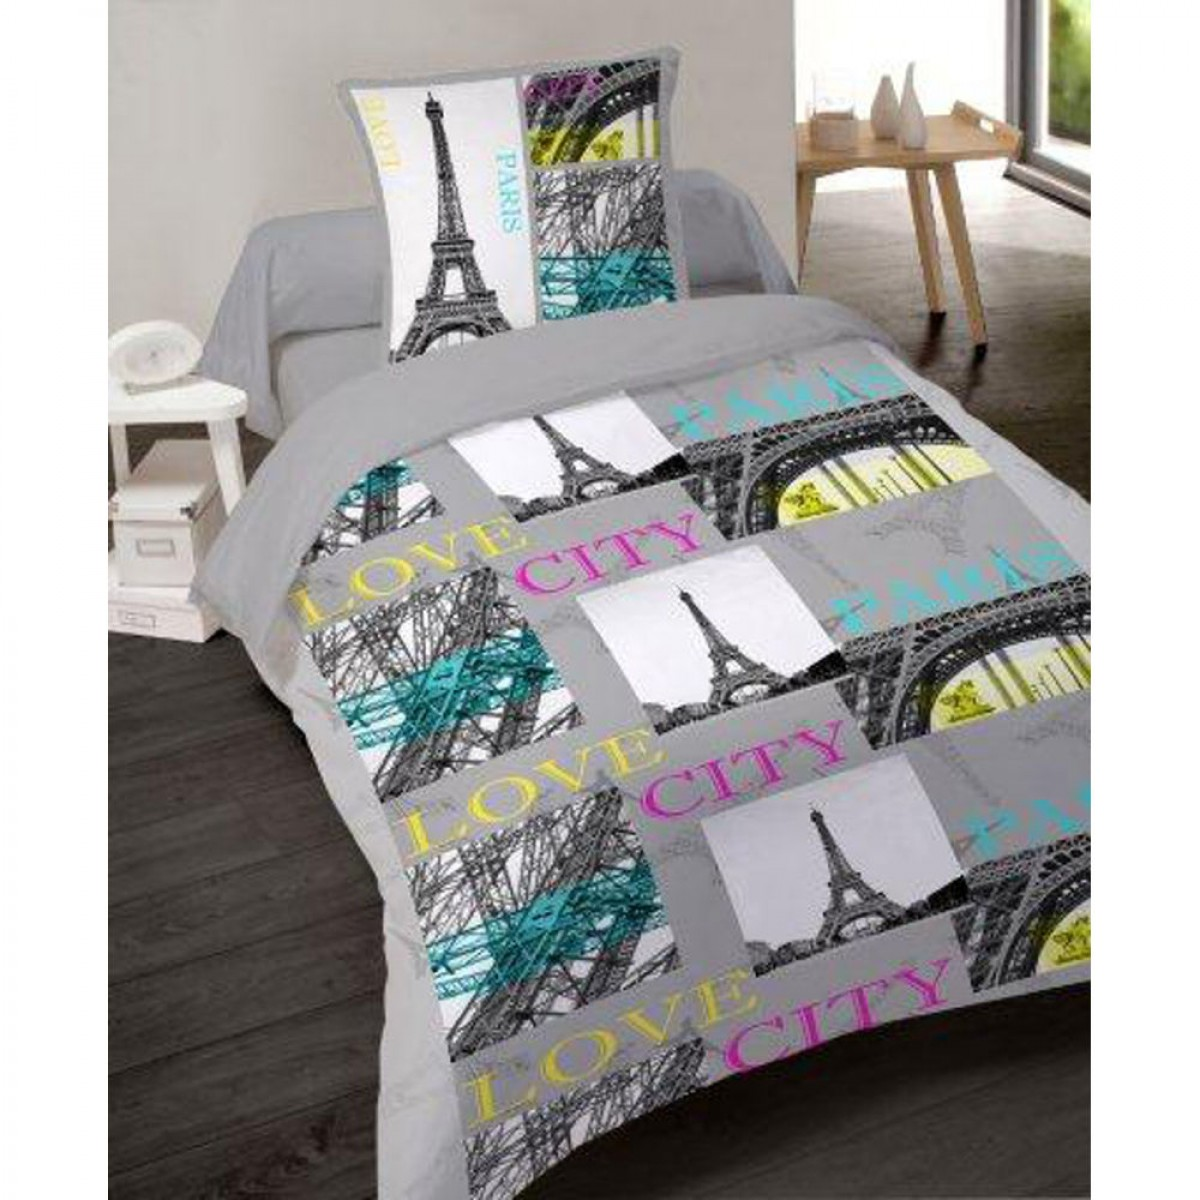 housse de couette paris city 140 200 cm 1 taie d 39 oreiller 65 65 les douces nuits de ma. Black Bedroom Furniture Sets. Home Design Ideas